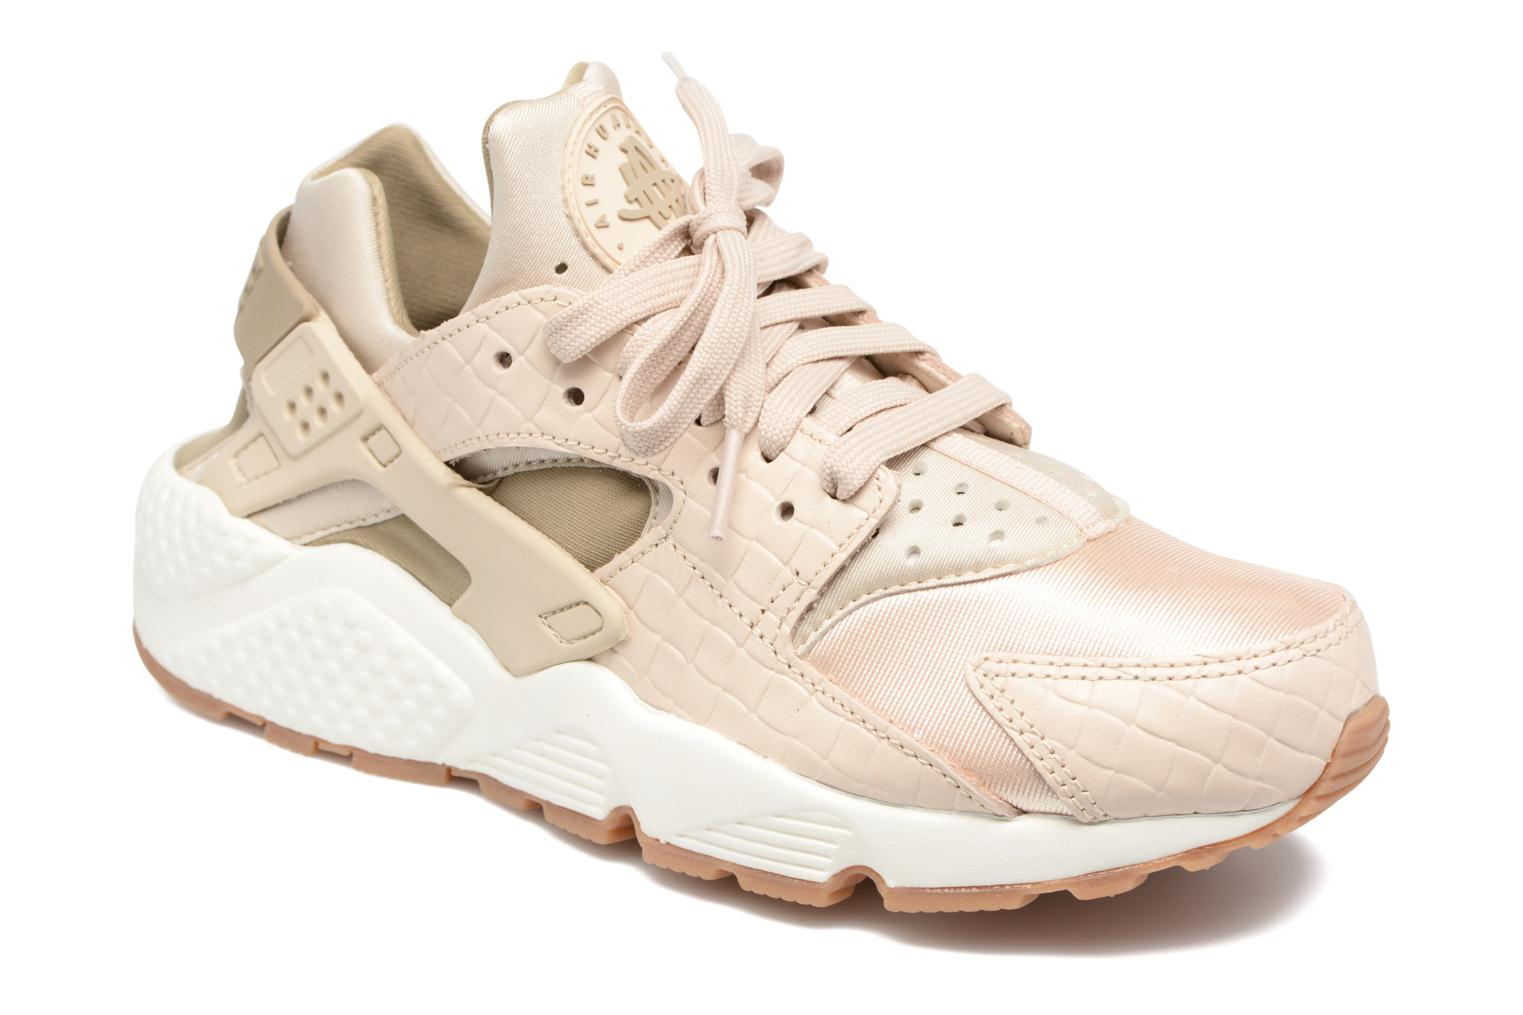 Wmns Air Huarache Run Prm OatmealKhaki-Sail-Gum Med Brown